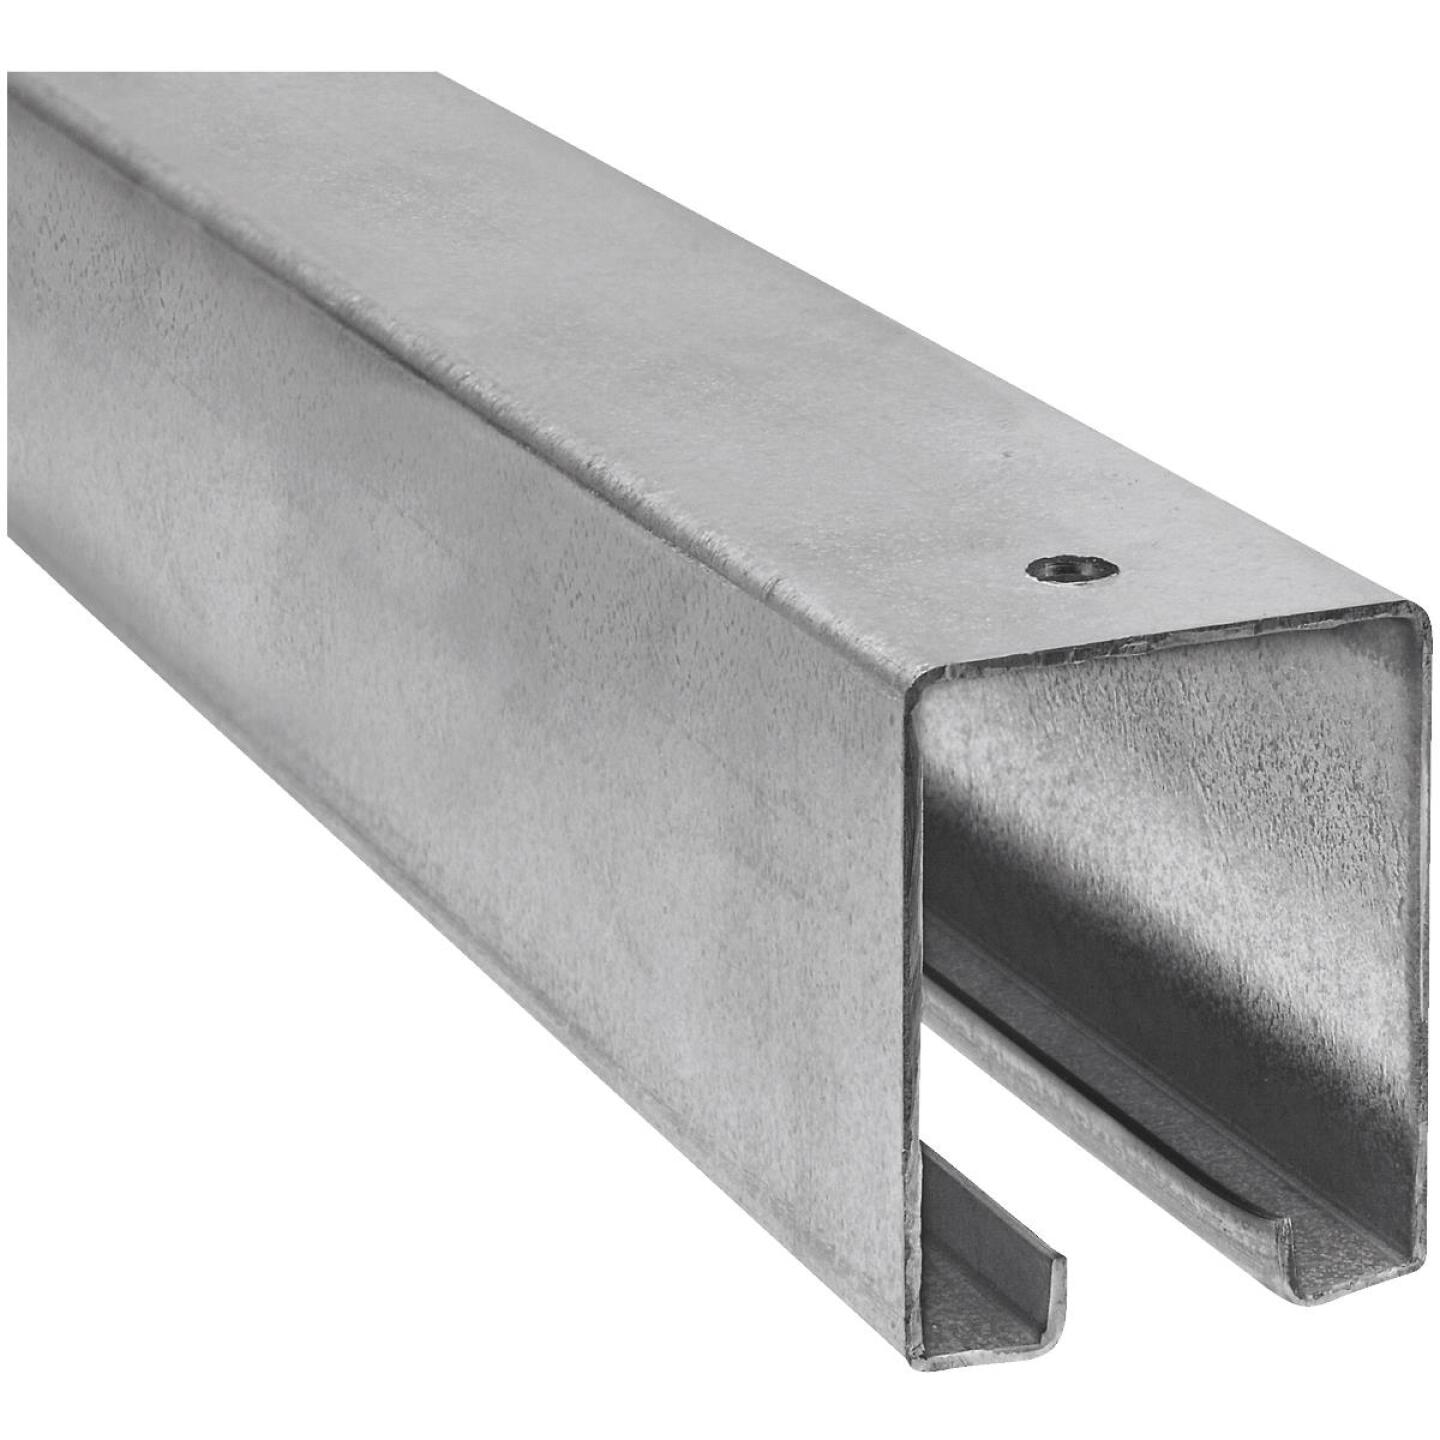 National 16 Ft. Galvanized Box Rail Barn Door Rail Image 1